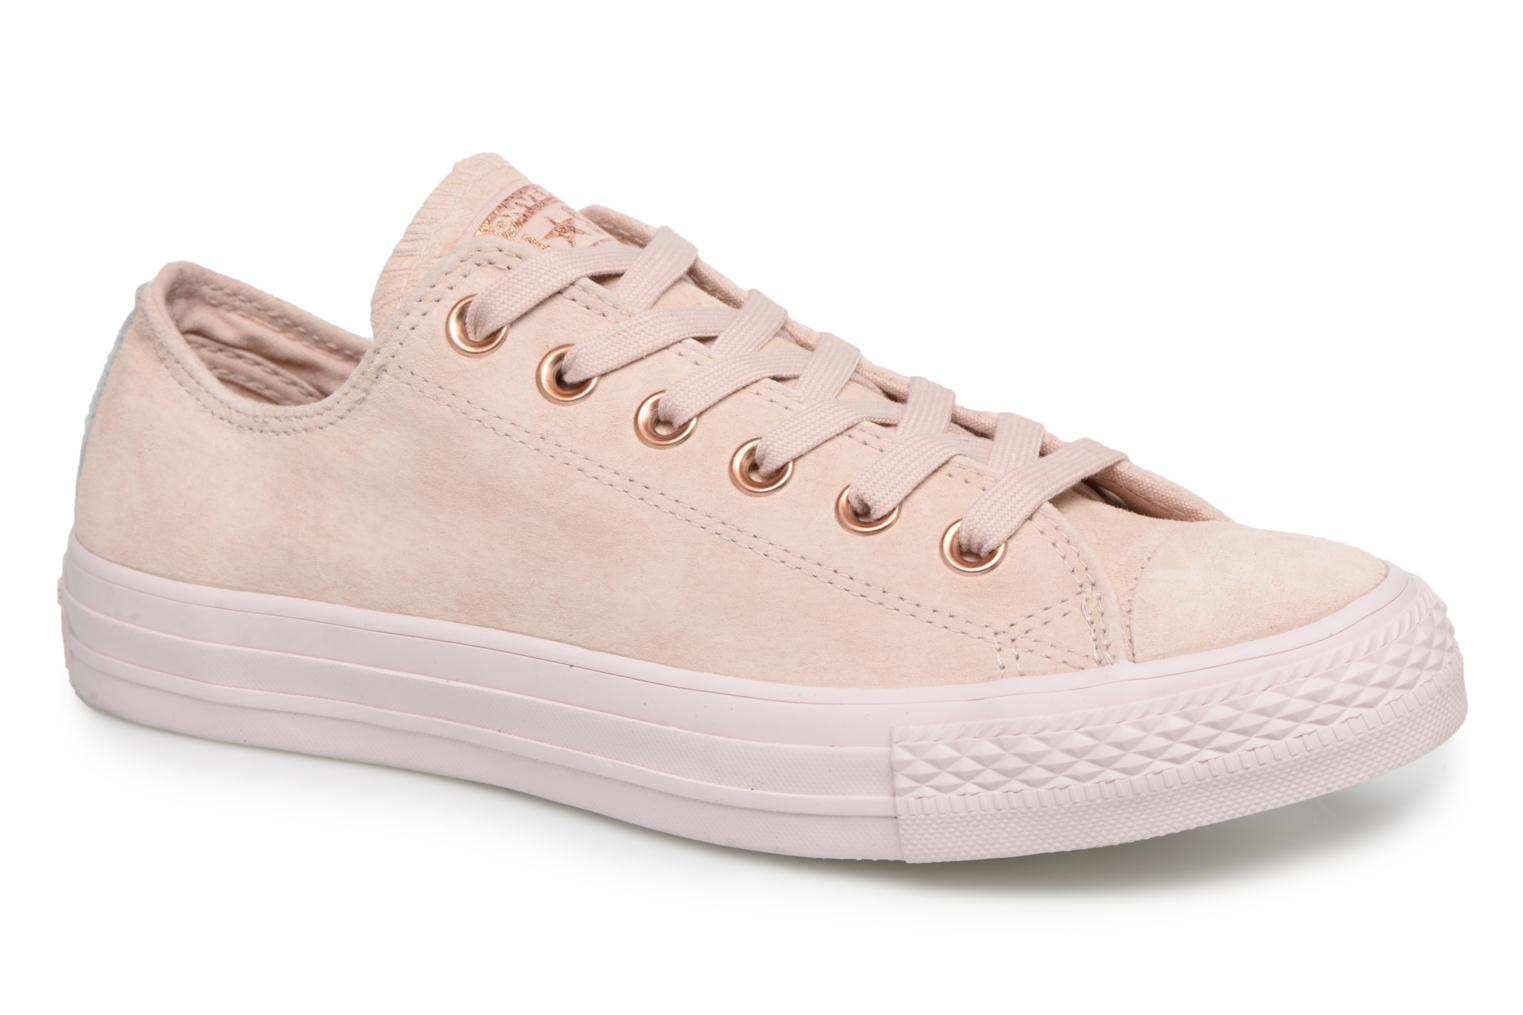 ZapatosConverse Chuck Taylor Star All Star Taylor Cherry Blossom II Ox (Beige) - Deportivas   Zapatos casuales salvajes 63ae21